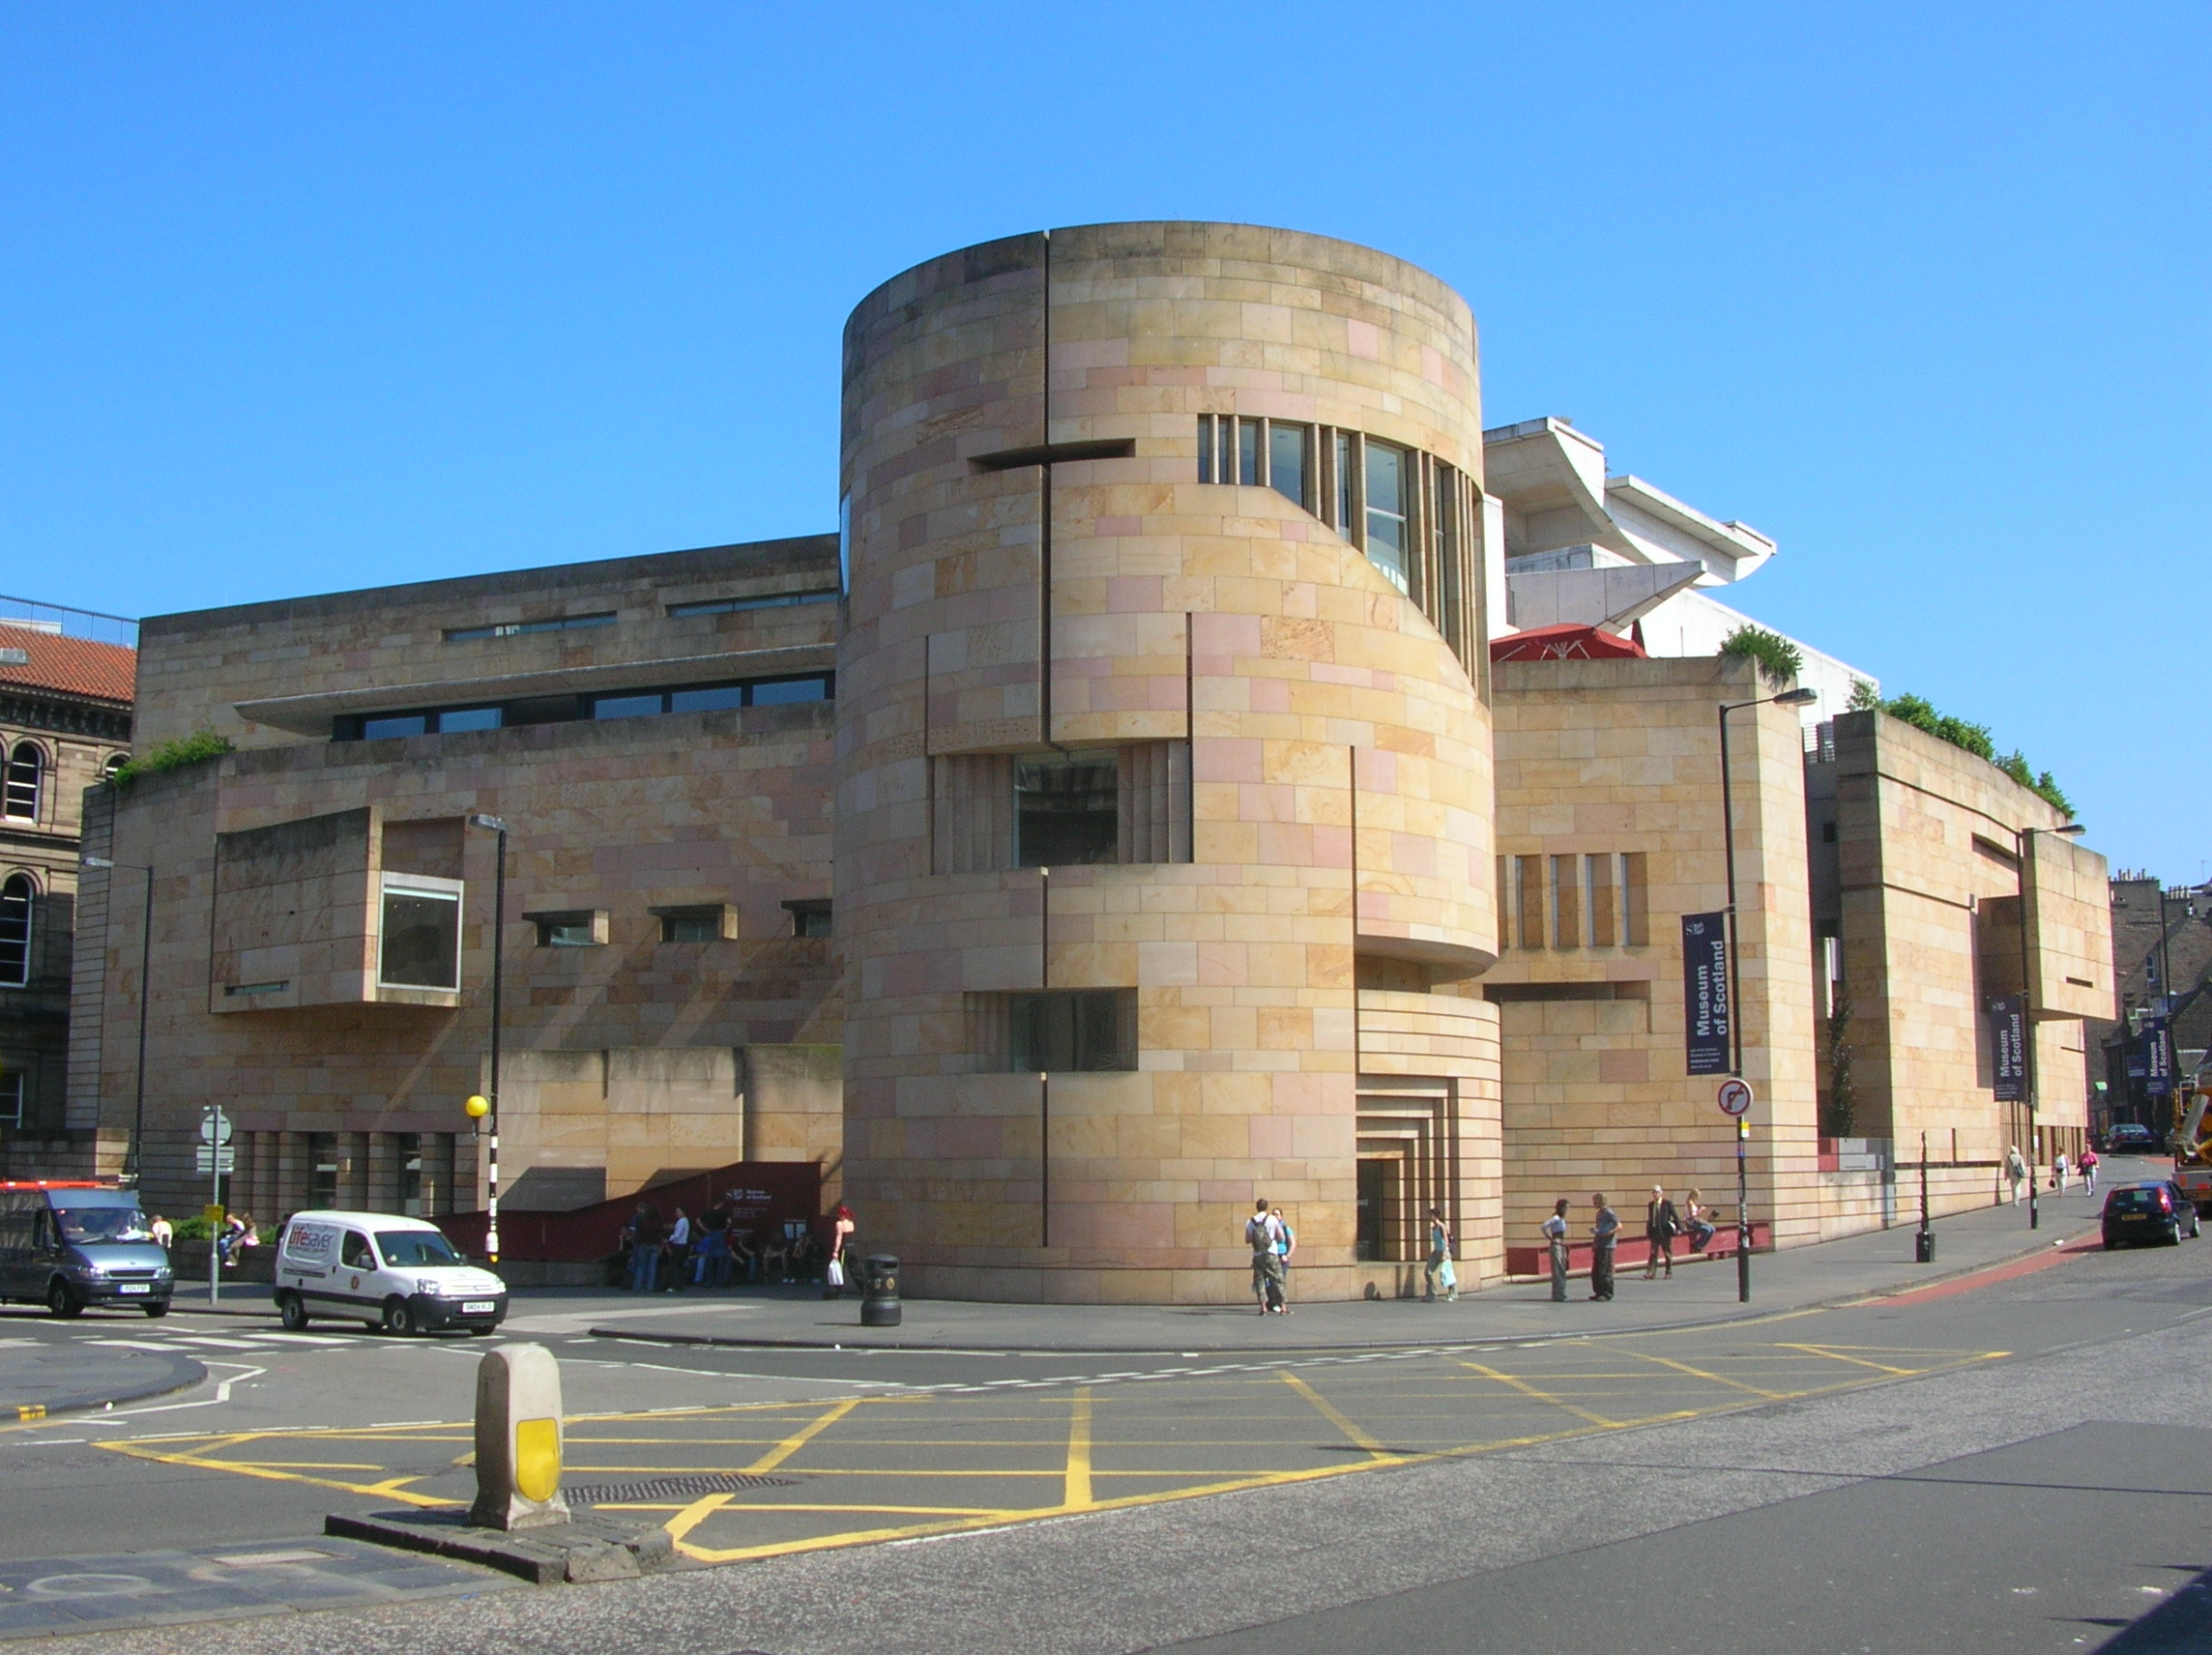 Museum of Scotland, Edinburgh, 2005. Foto met dank aan Maccoinnich, CC BY-SA 3.0